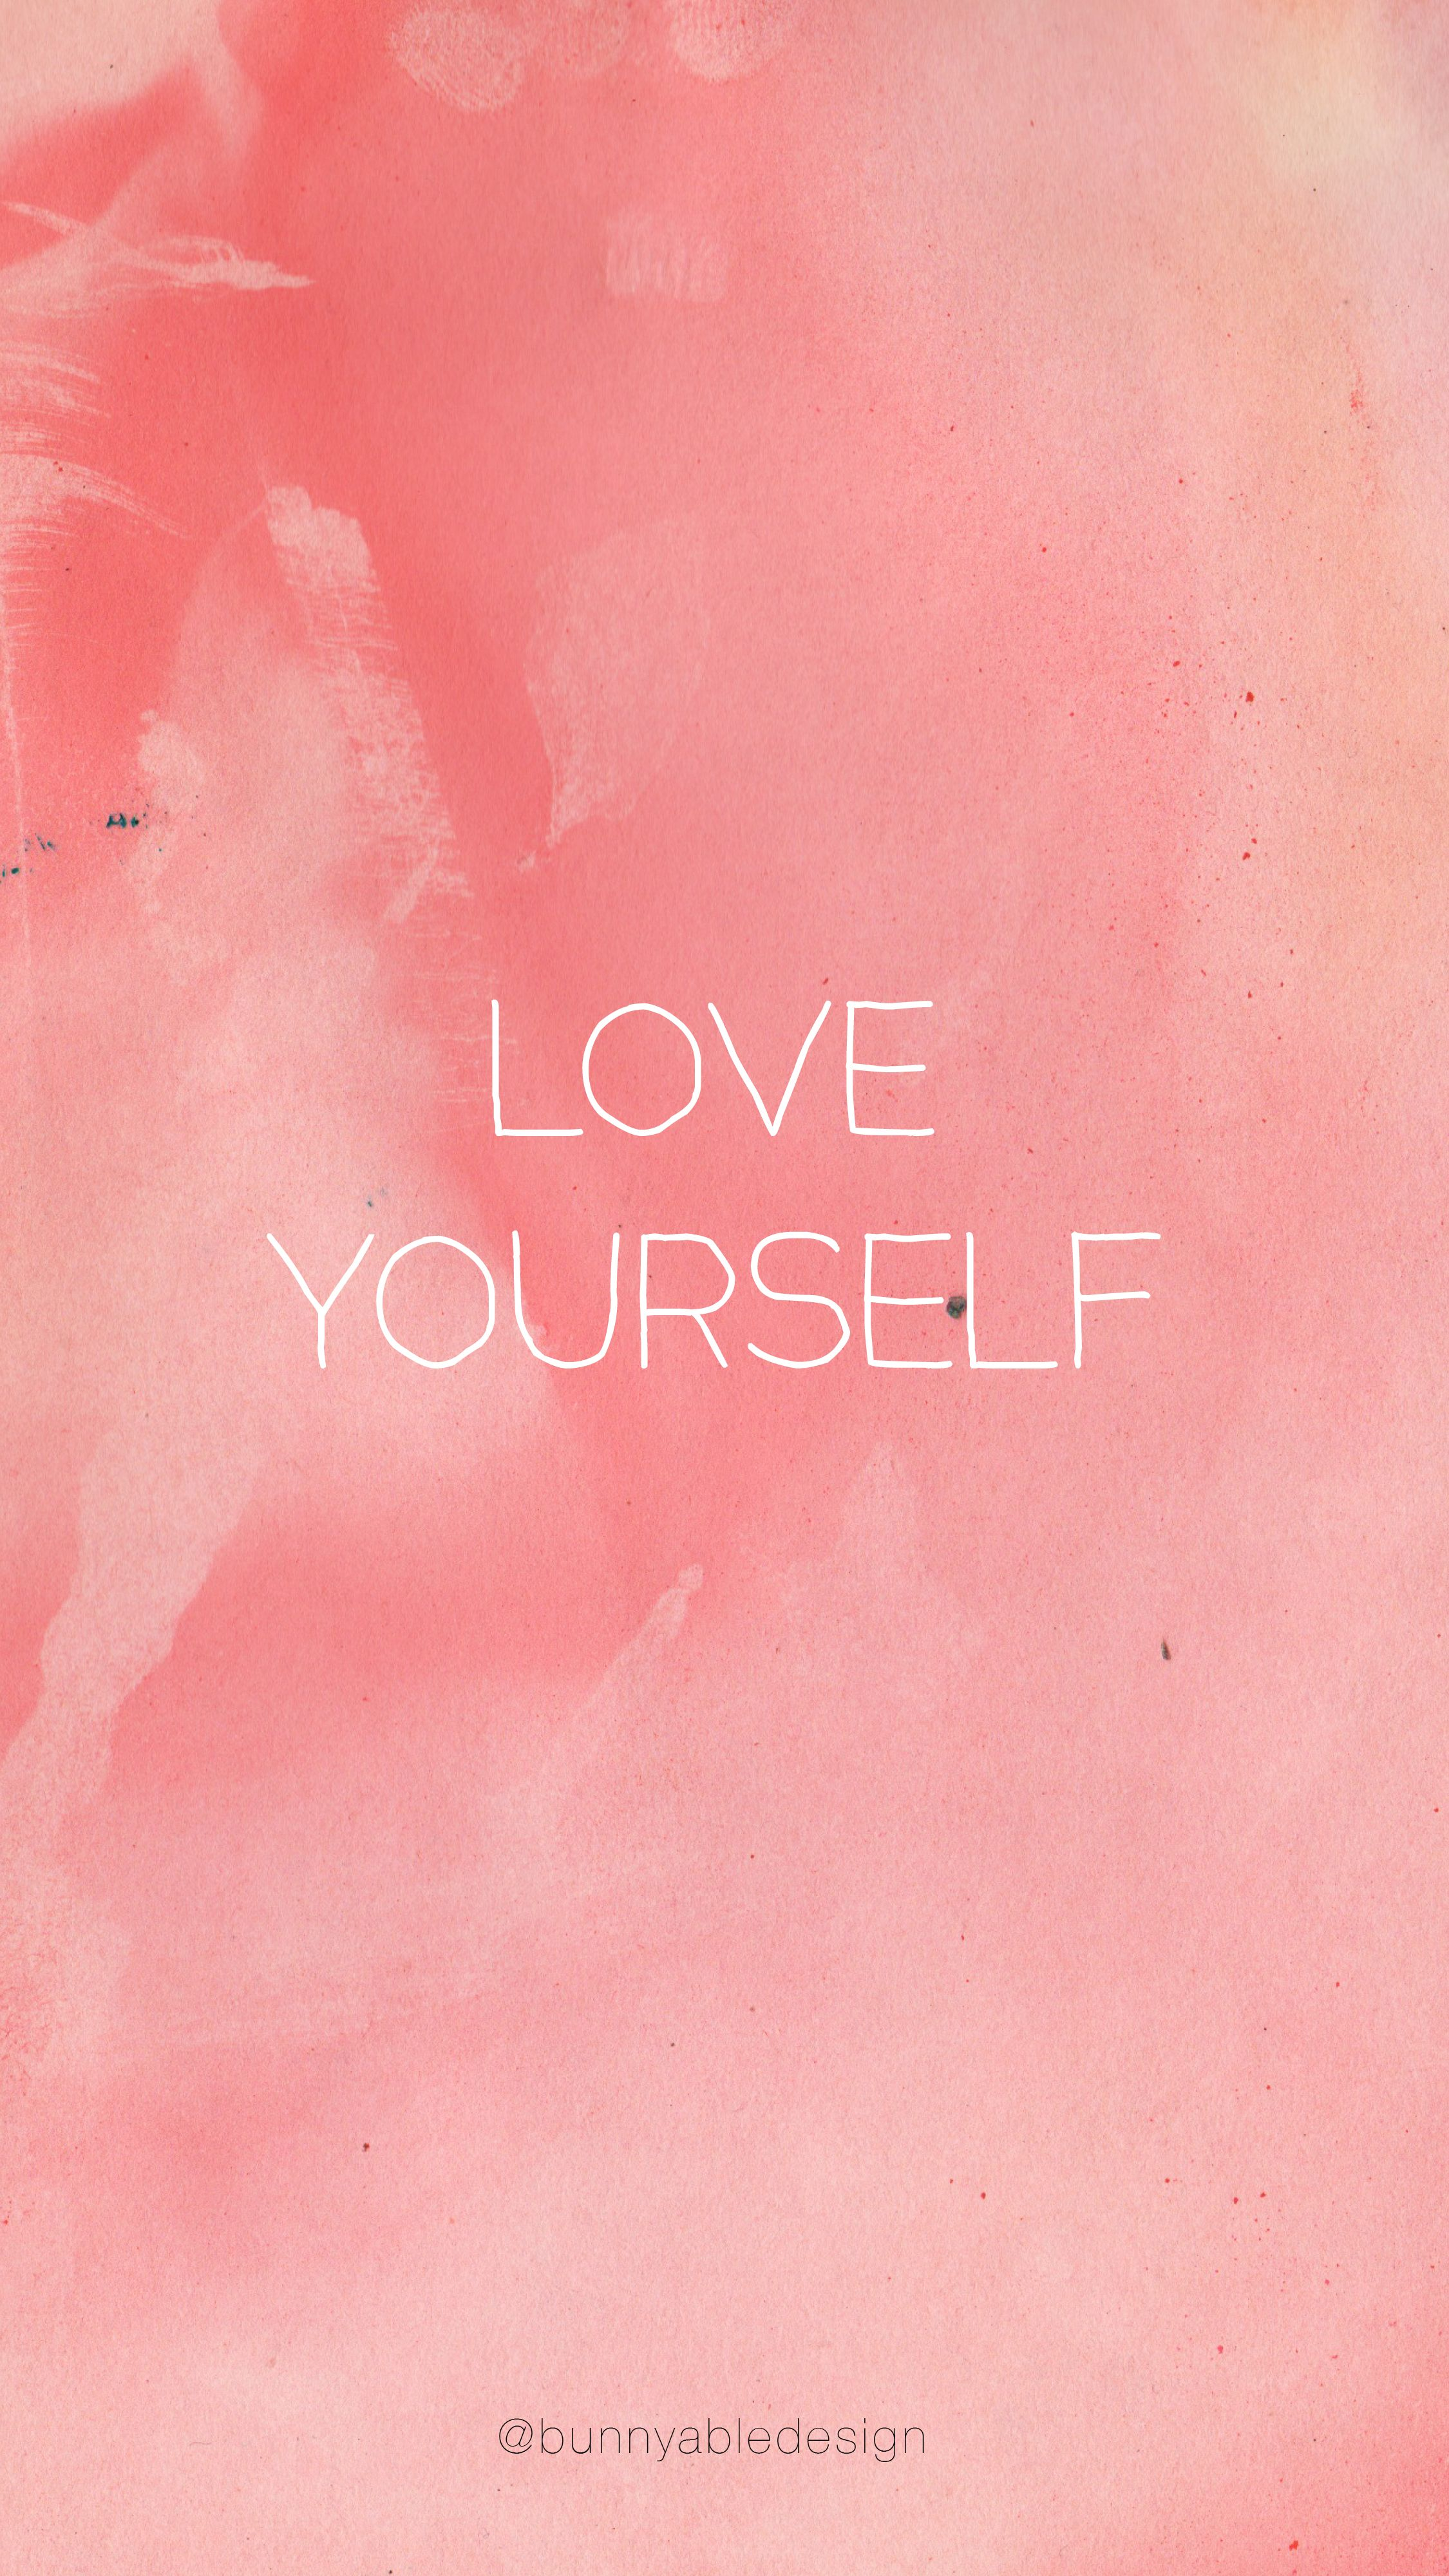 Love Yourself Wallpaper Iphone Wallpaper Iphone Love Love Wallpaper Backgrounds Pretty Wallpapers